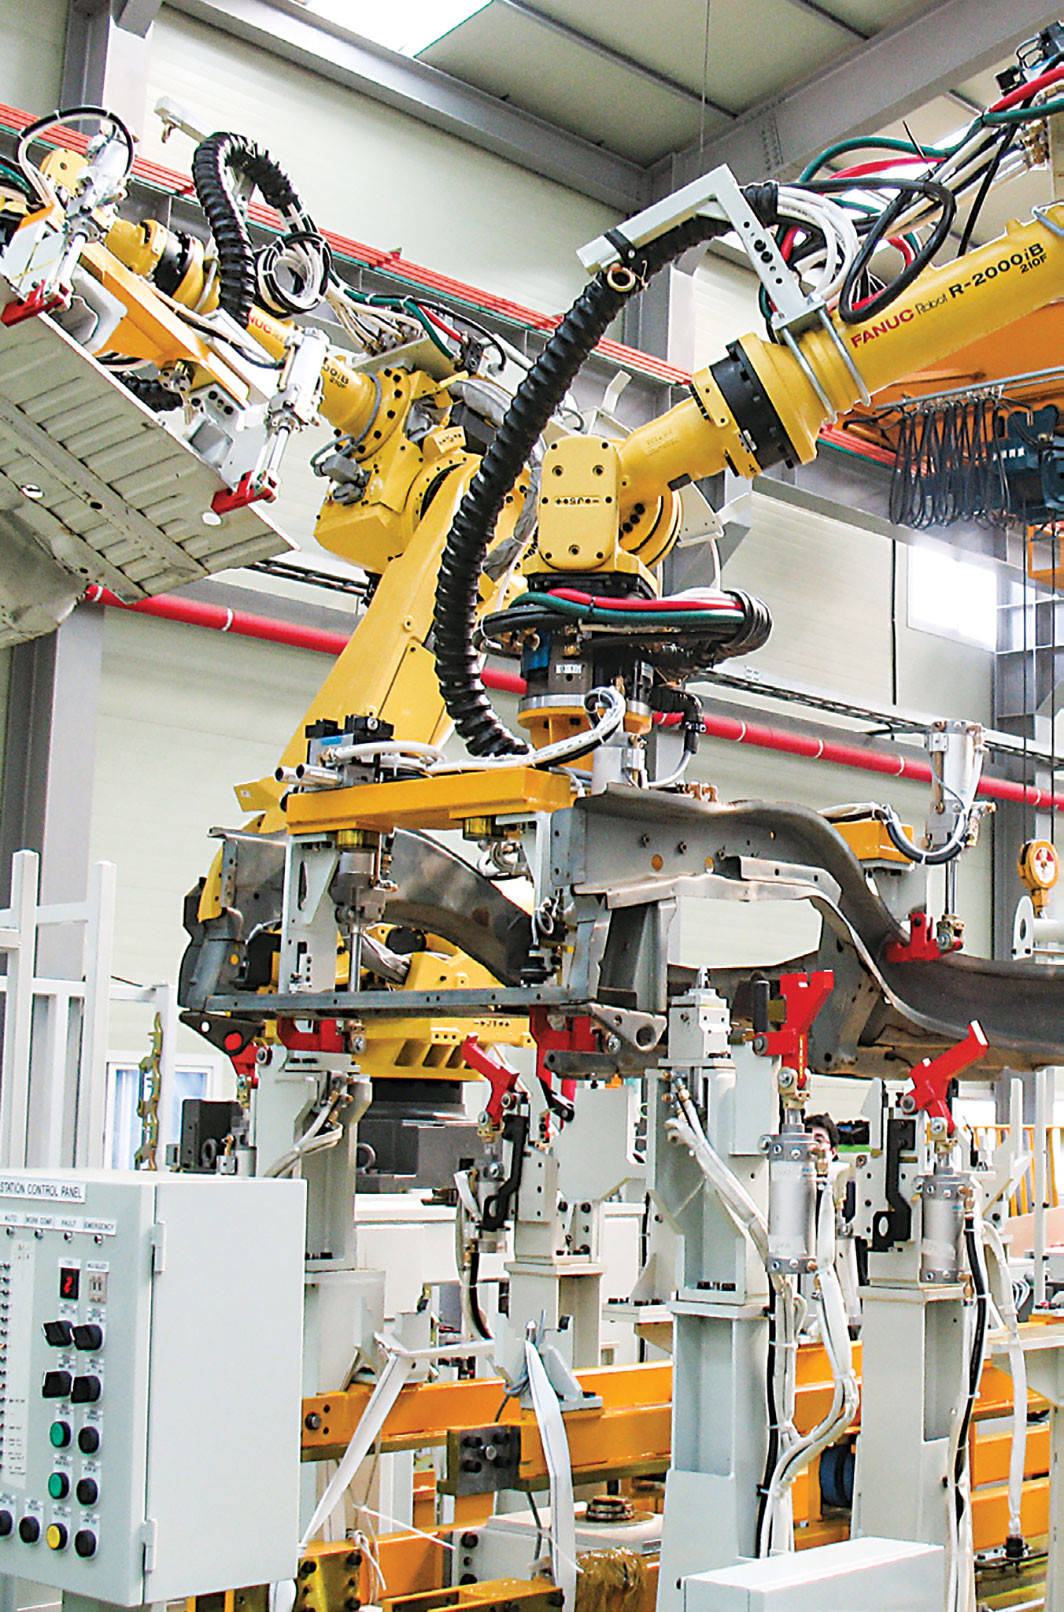 Automobile manufacturing plant, 2008. Wikicommons